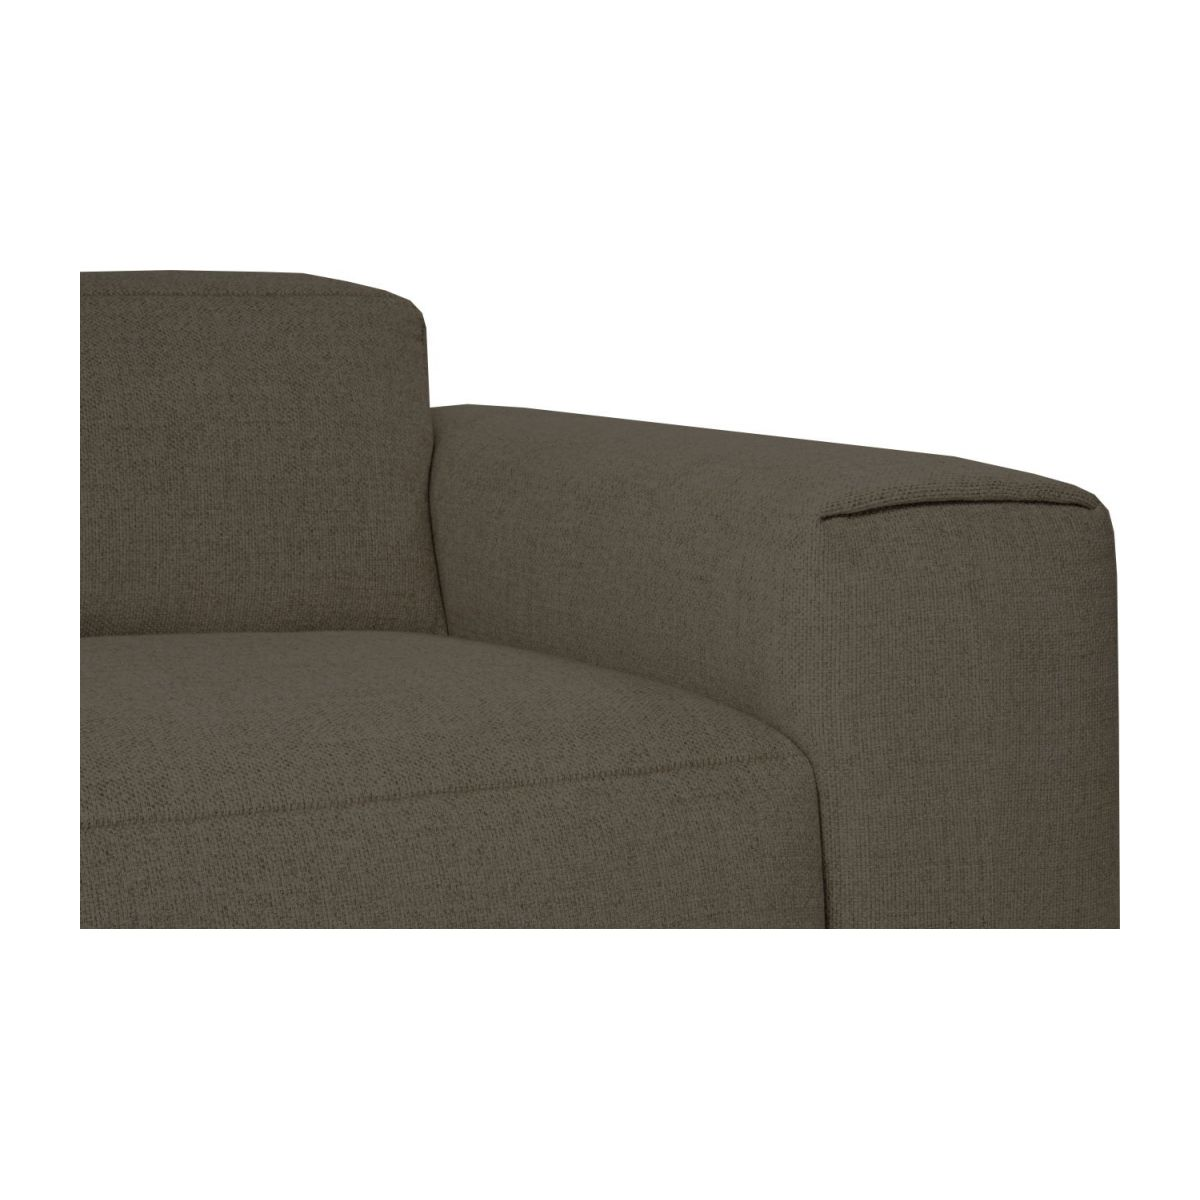 2 seater sofa in Lecce fabric, muscat n°5